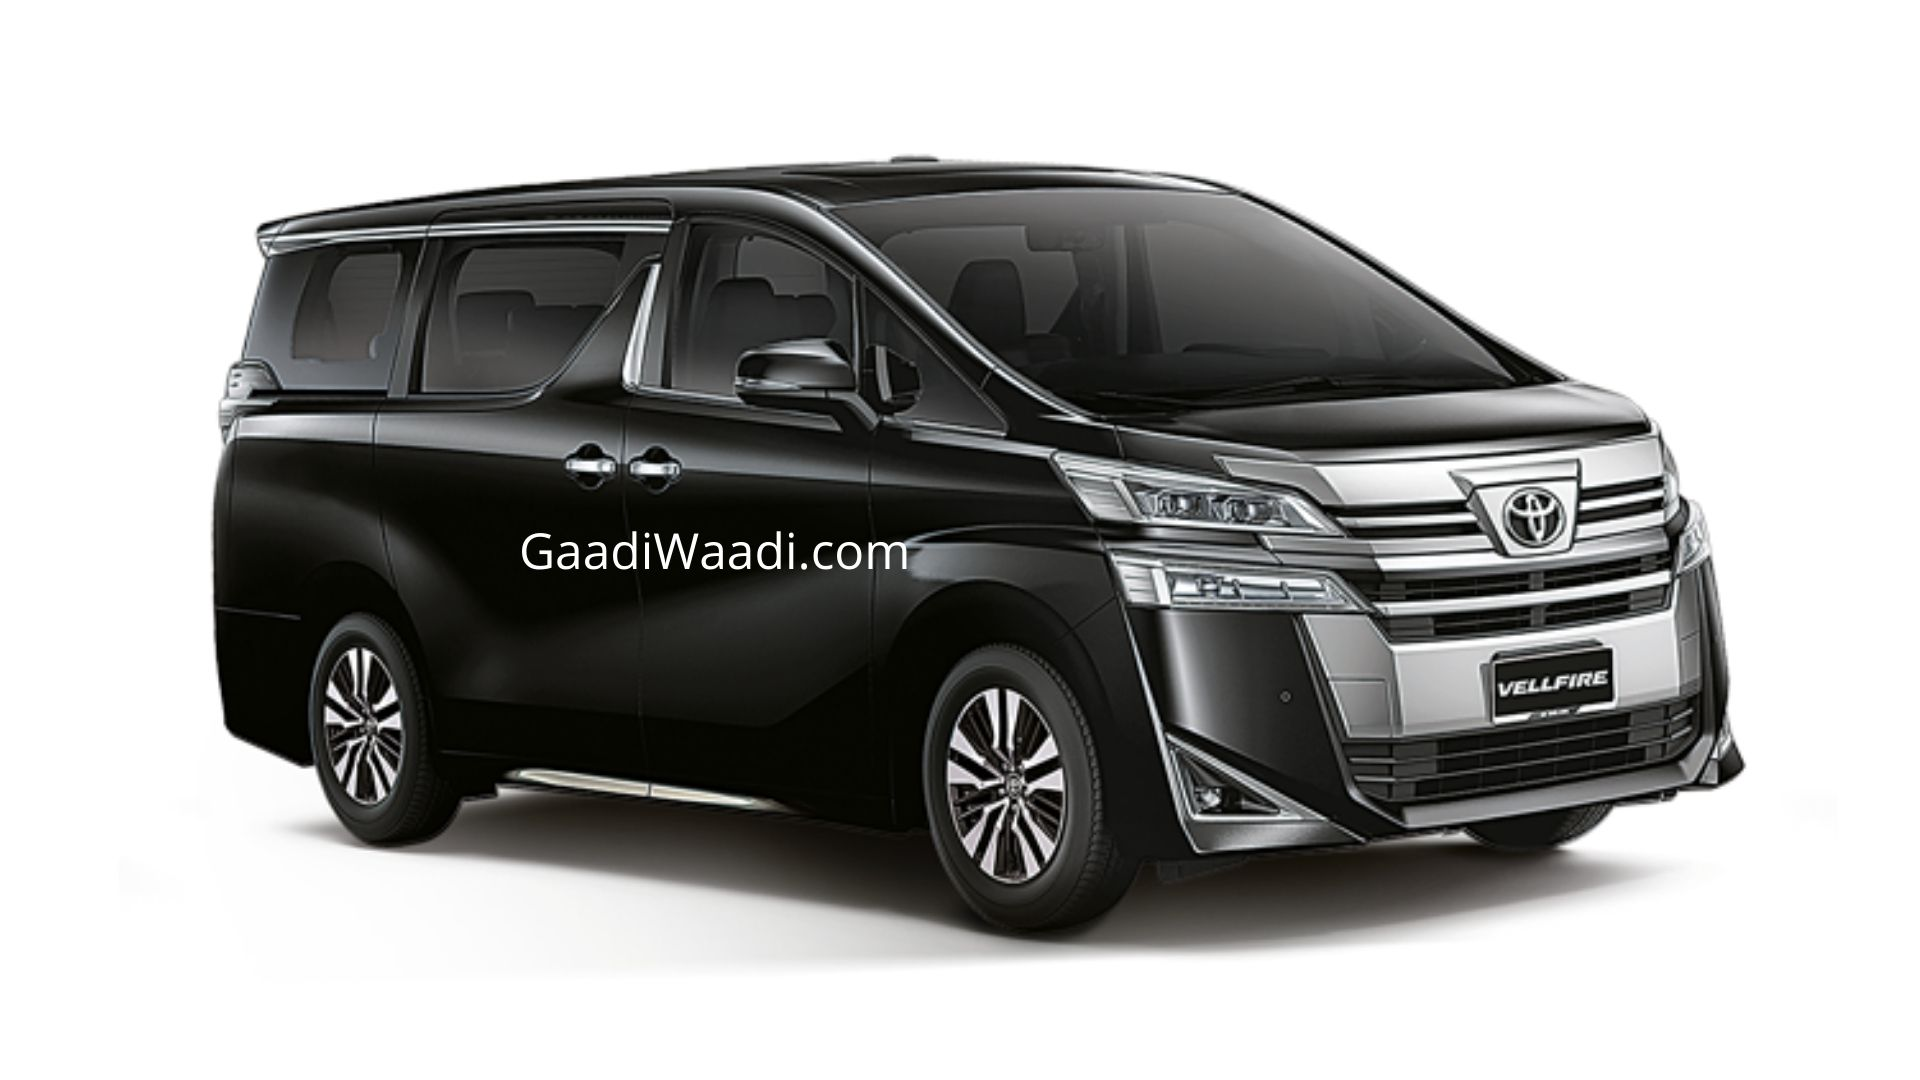 Toyota Vellfire Picking Up Demand In India – June 2020 Sales Figures Out